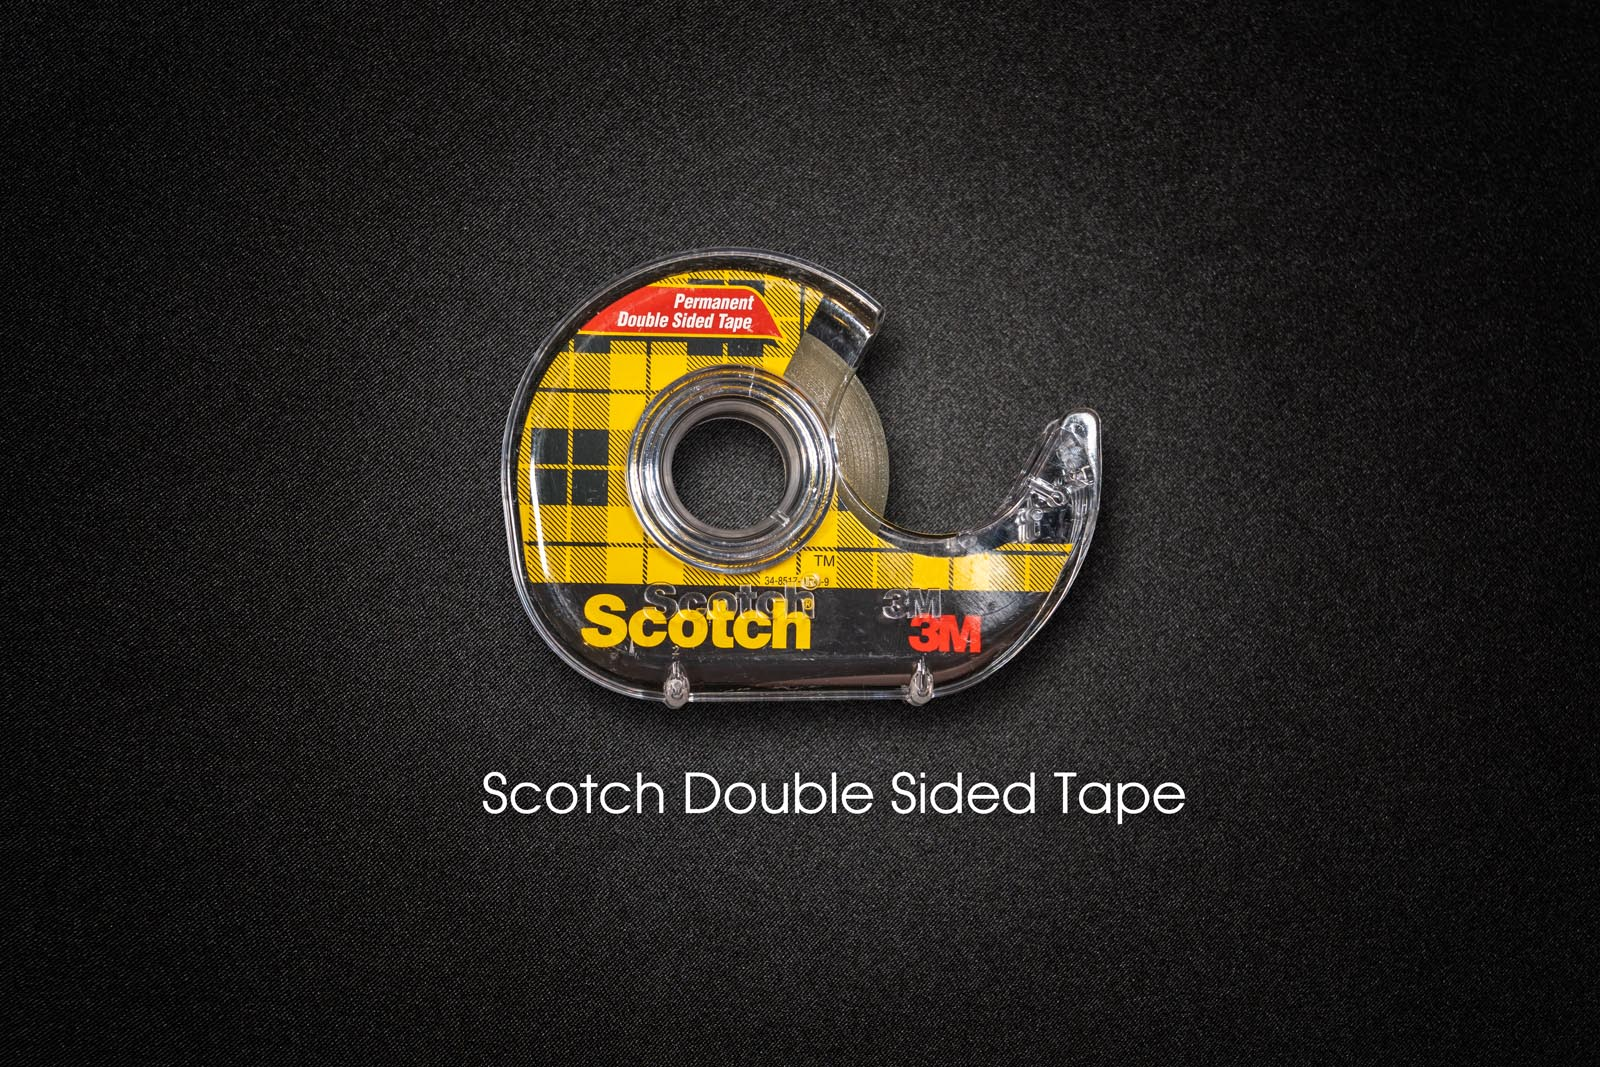 18 Scotch Double Sided Tape.jpg